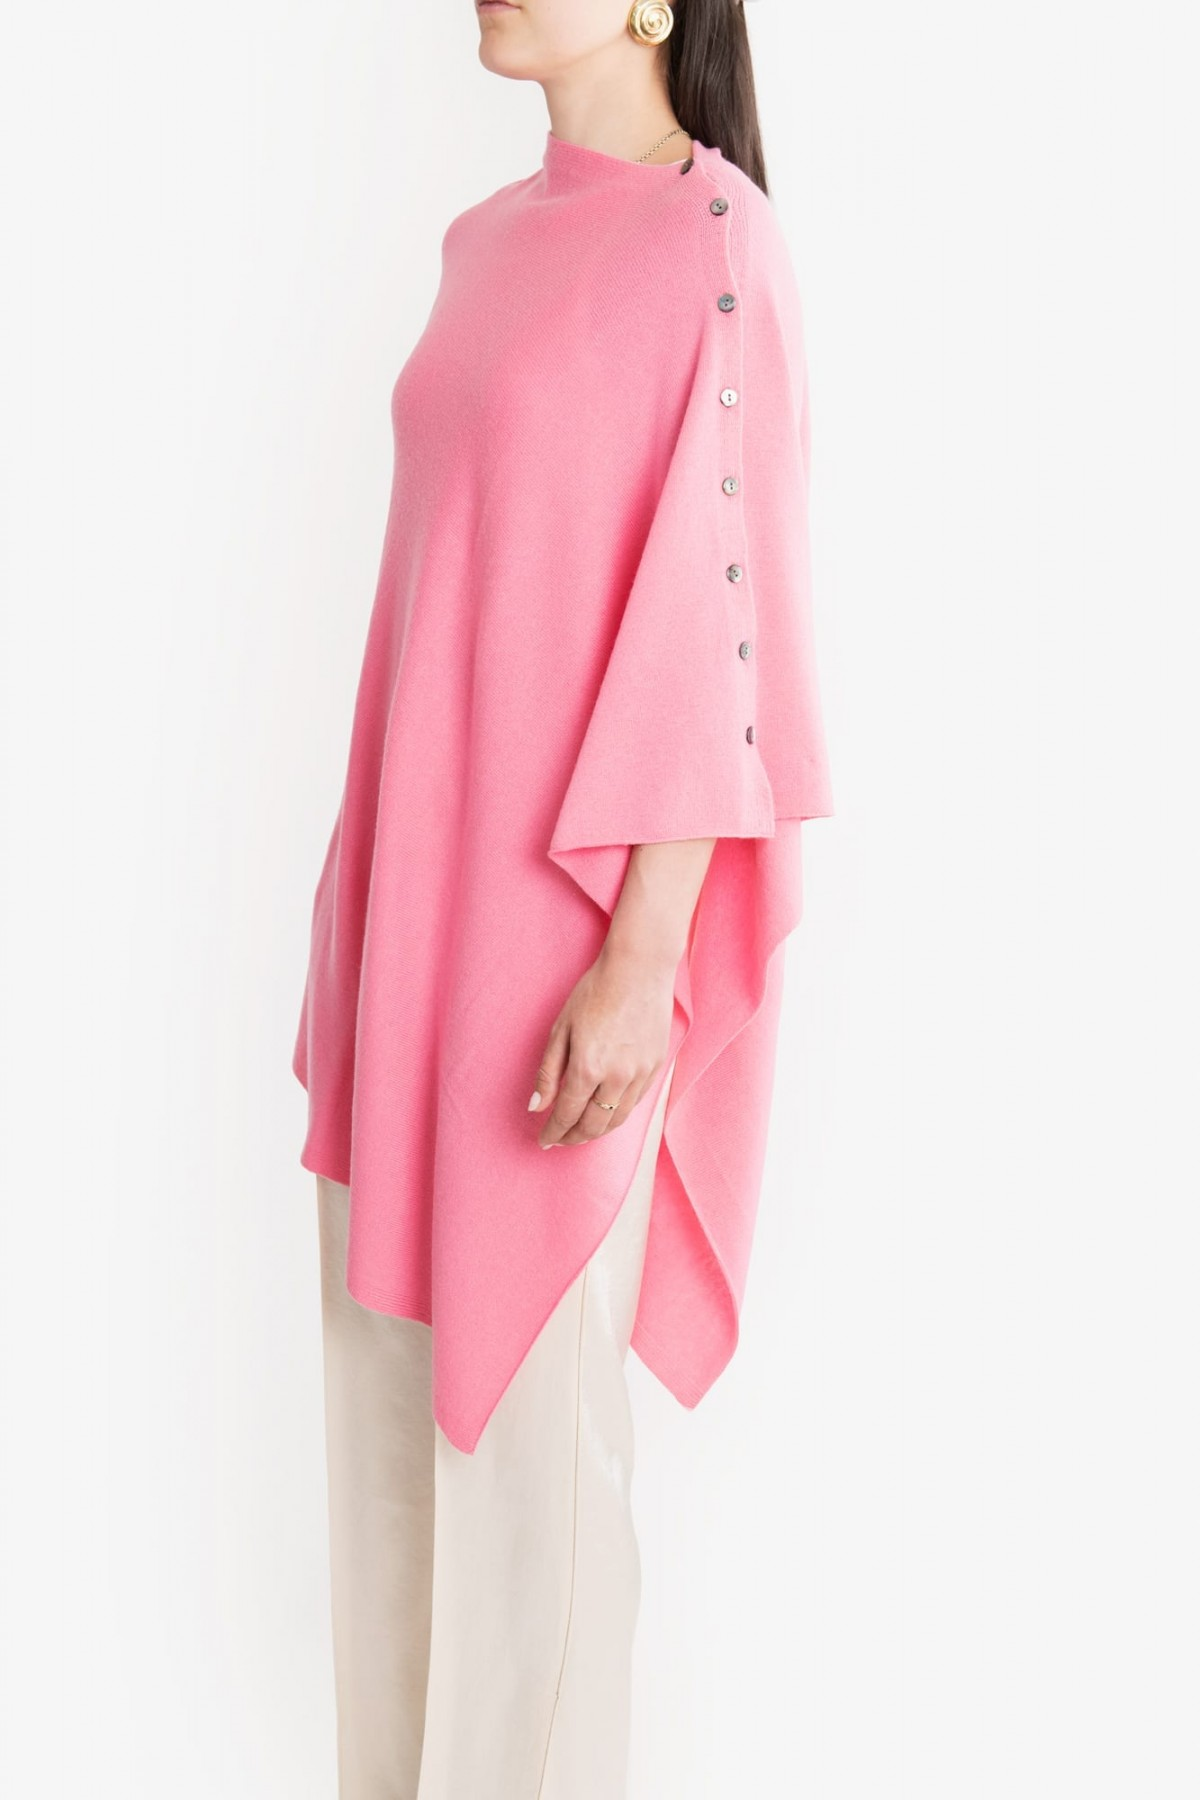 Cashmere Button Wrap – Choice of Beautiful Colours at Henley Circle Online Shop